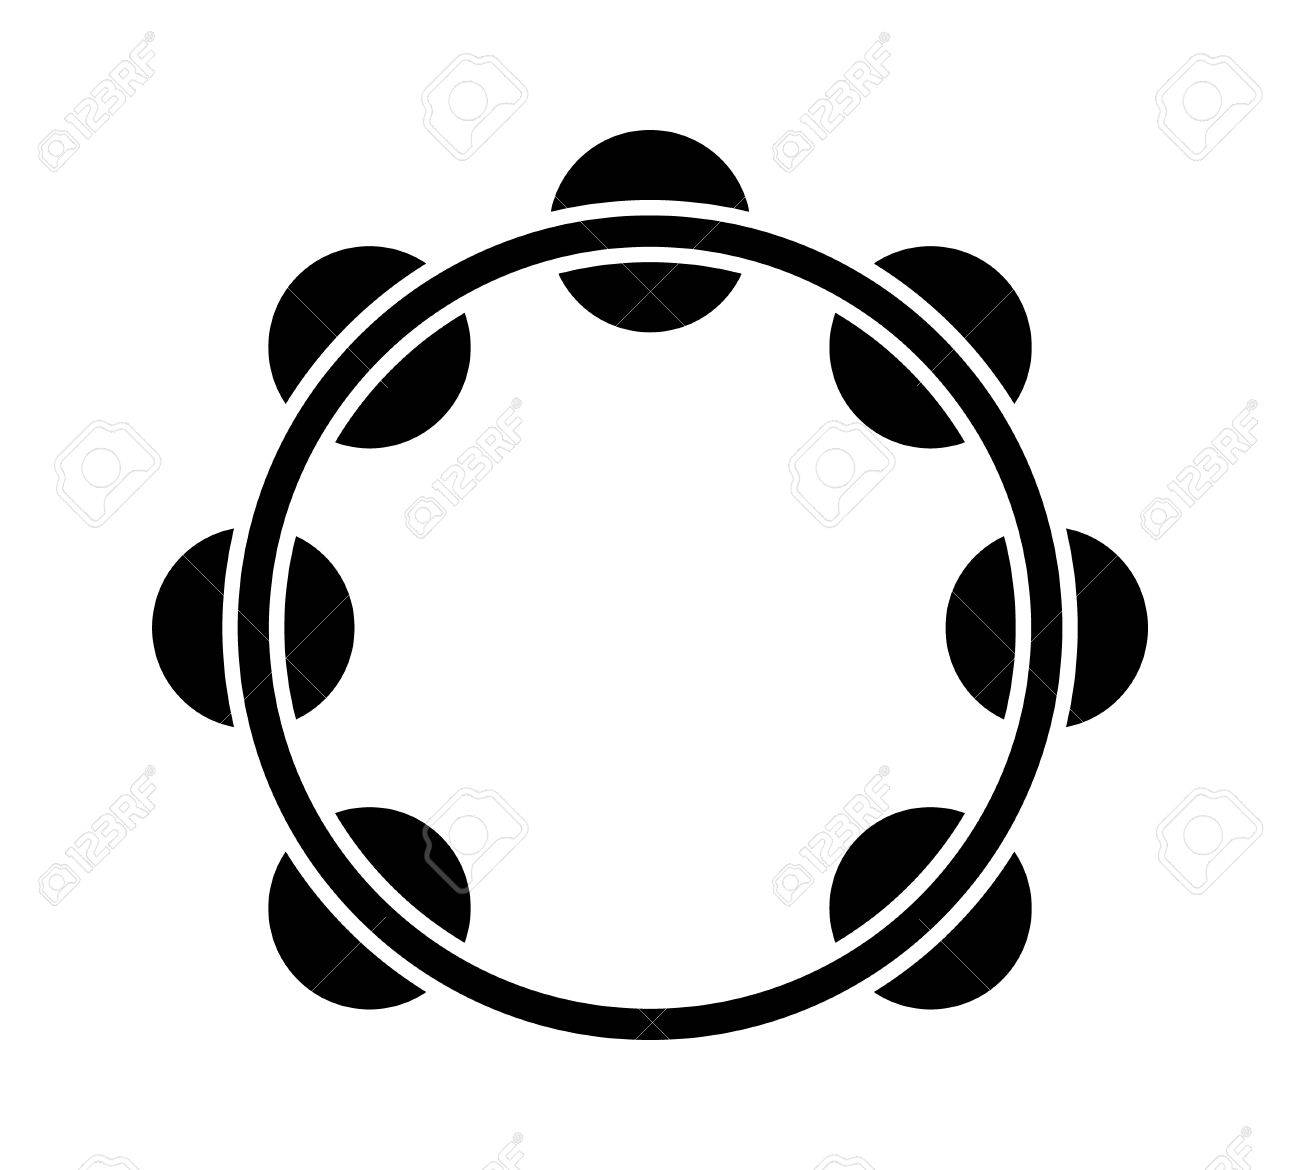 Headless Royalty Free Stock Music  >> Headless Tambourine Musical Instrument Flat Icon For Music Apps